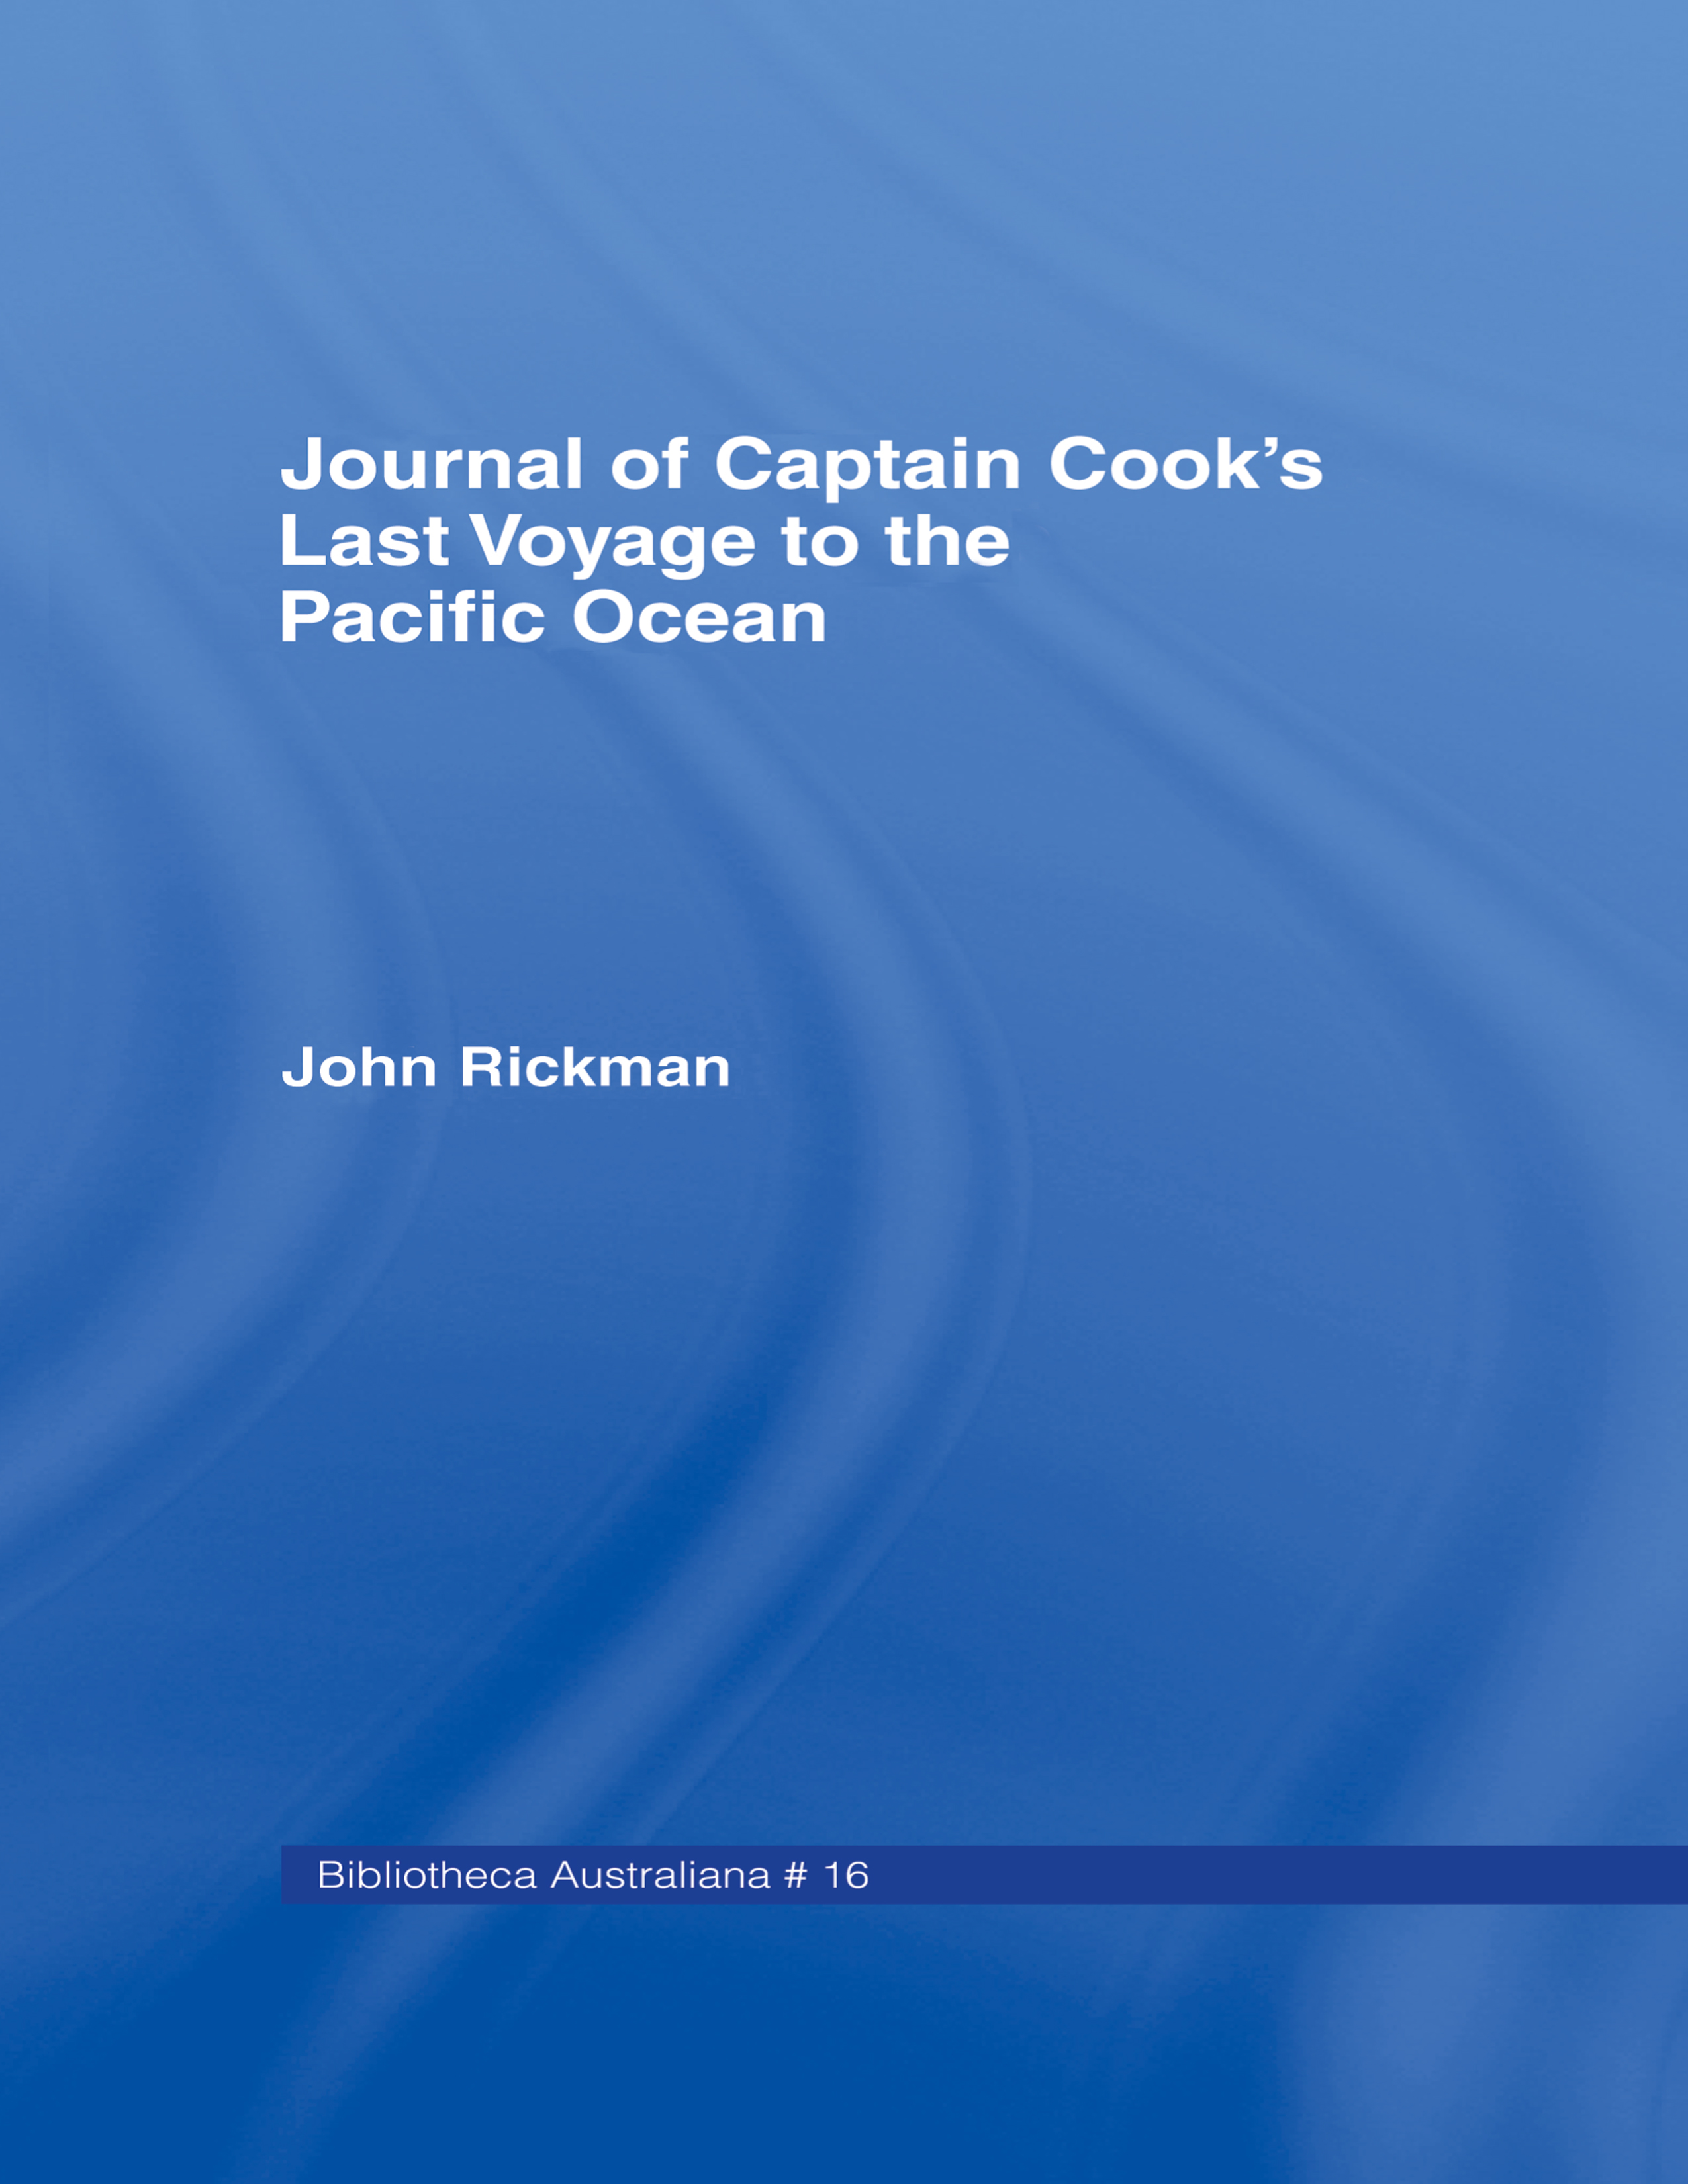 Journal of Captain Cook's Last Voyage